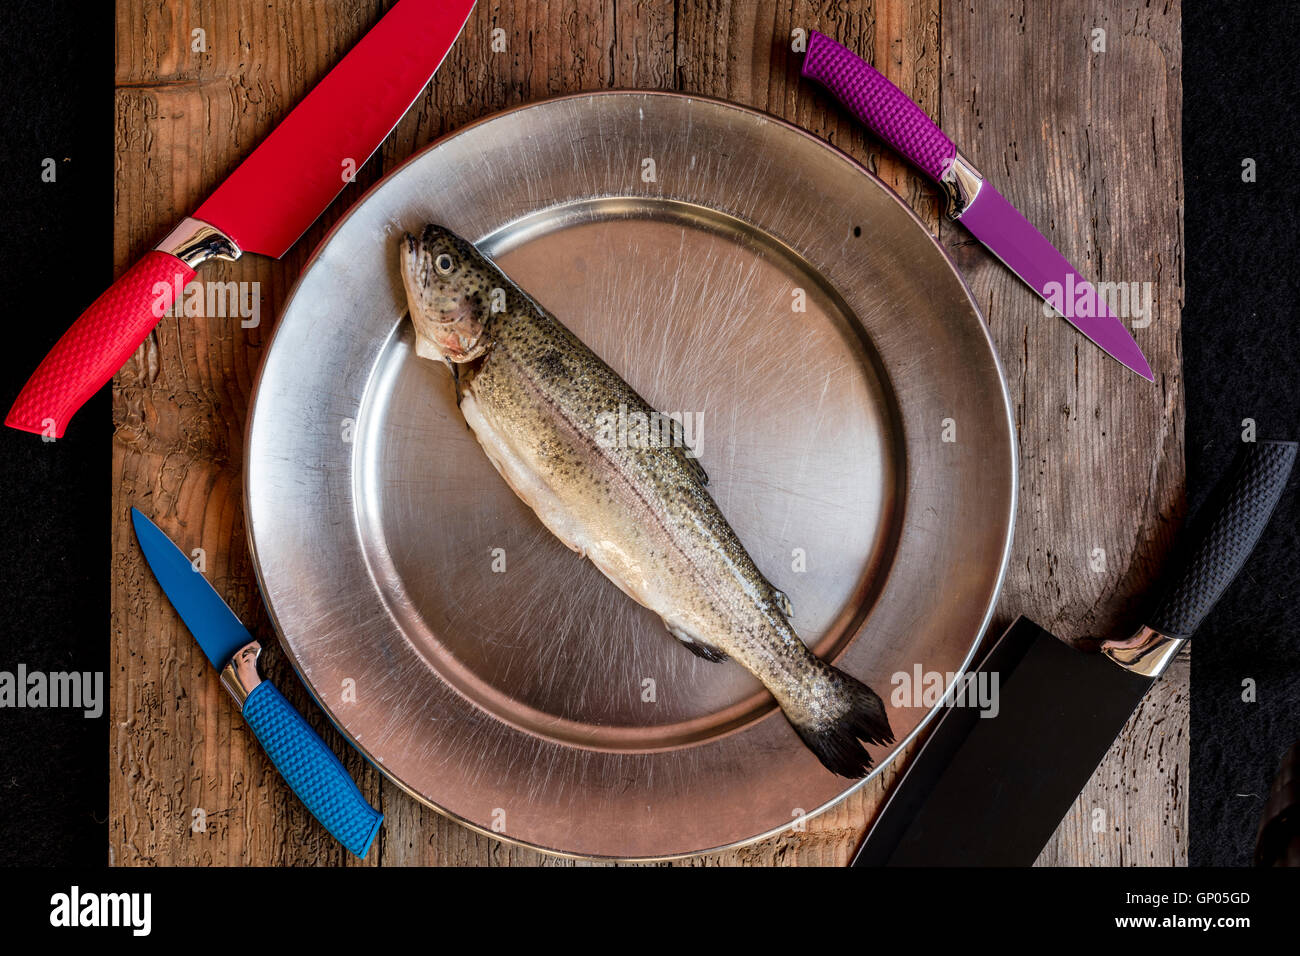 Fresh fish genuine ingredient of healthy Italian cooking - Stock Image